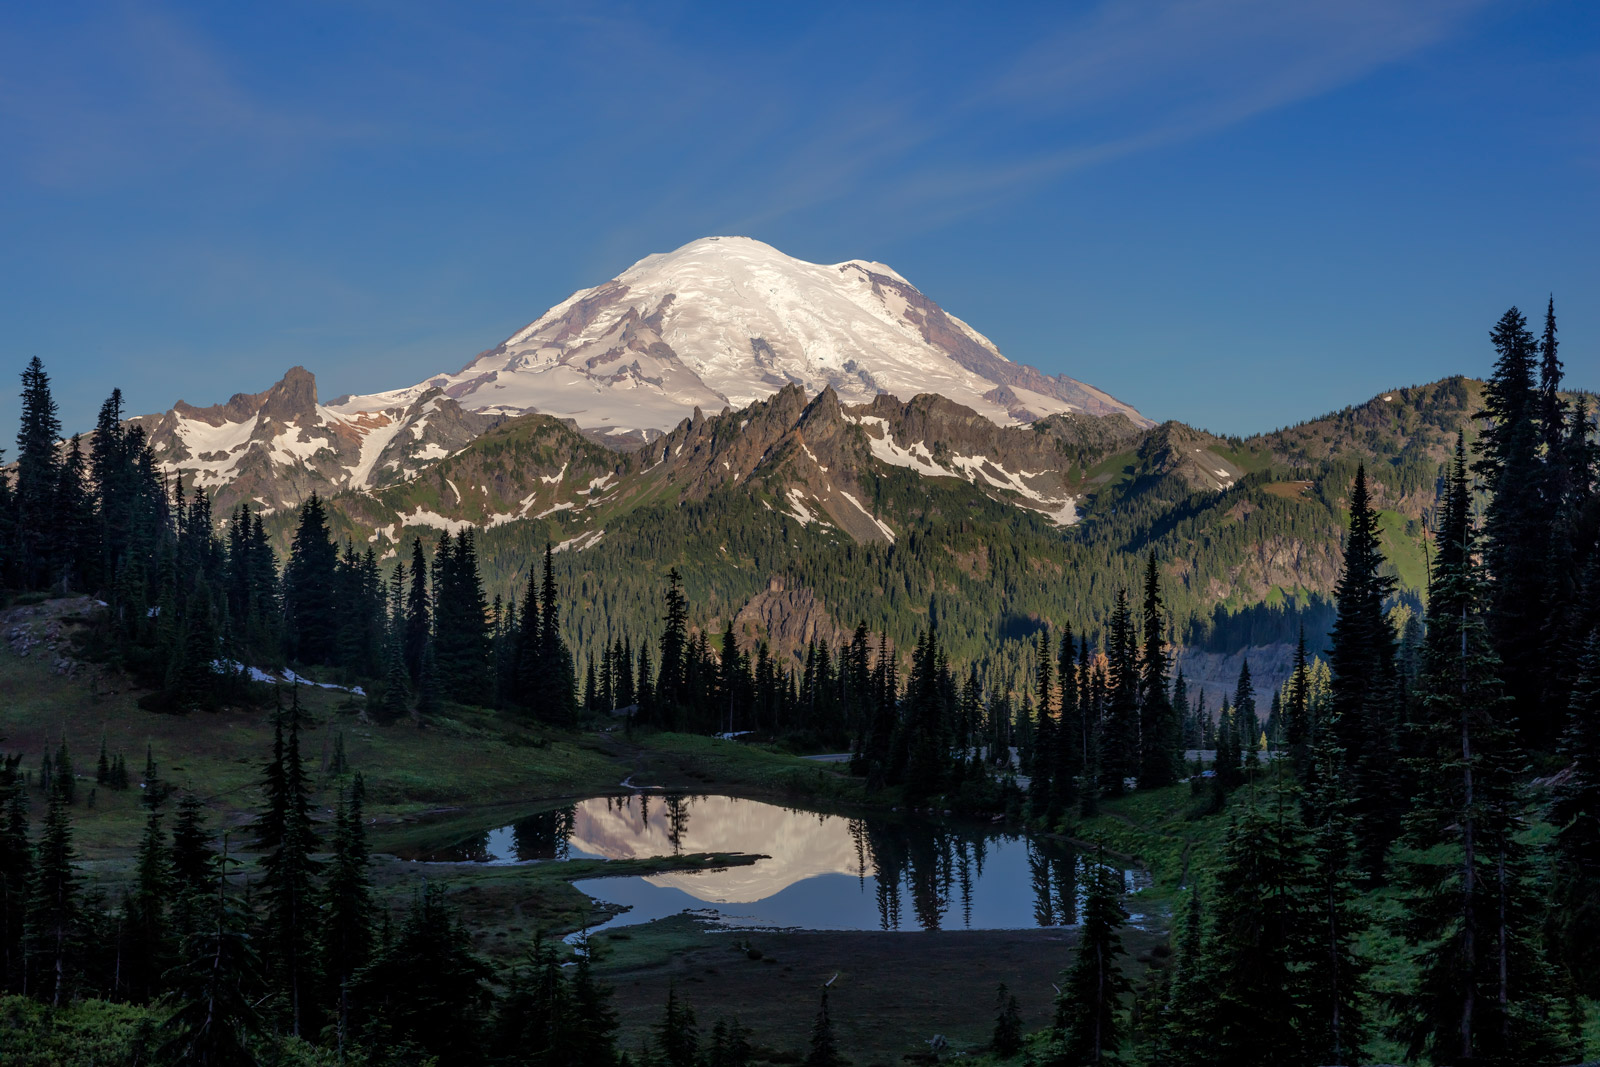 Washington, Mount Rainier, Tipsoo Lake, Reflection, limited edition, photograph, fine art, landscape, photo